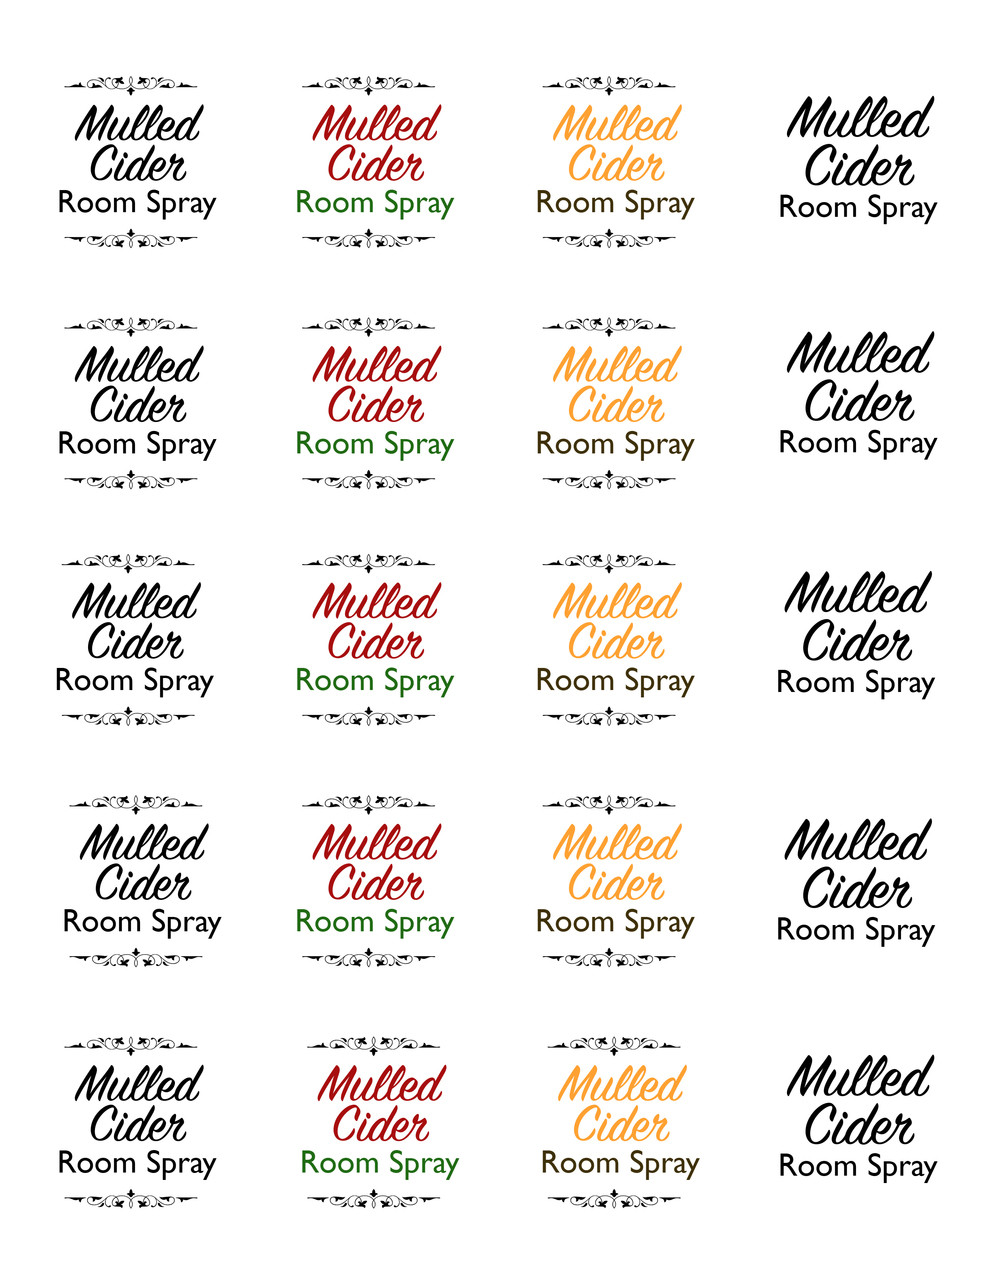 Mulled Cider Essential Oil Holiday Room Spray Template